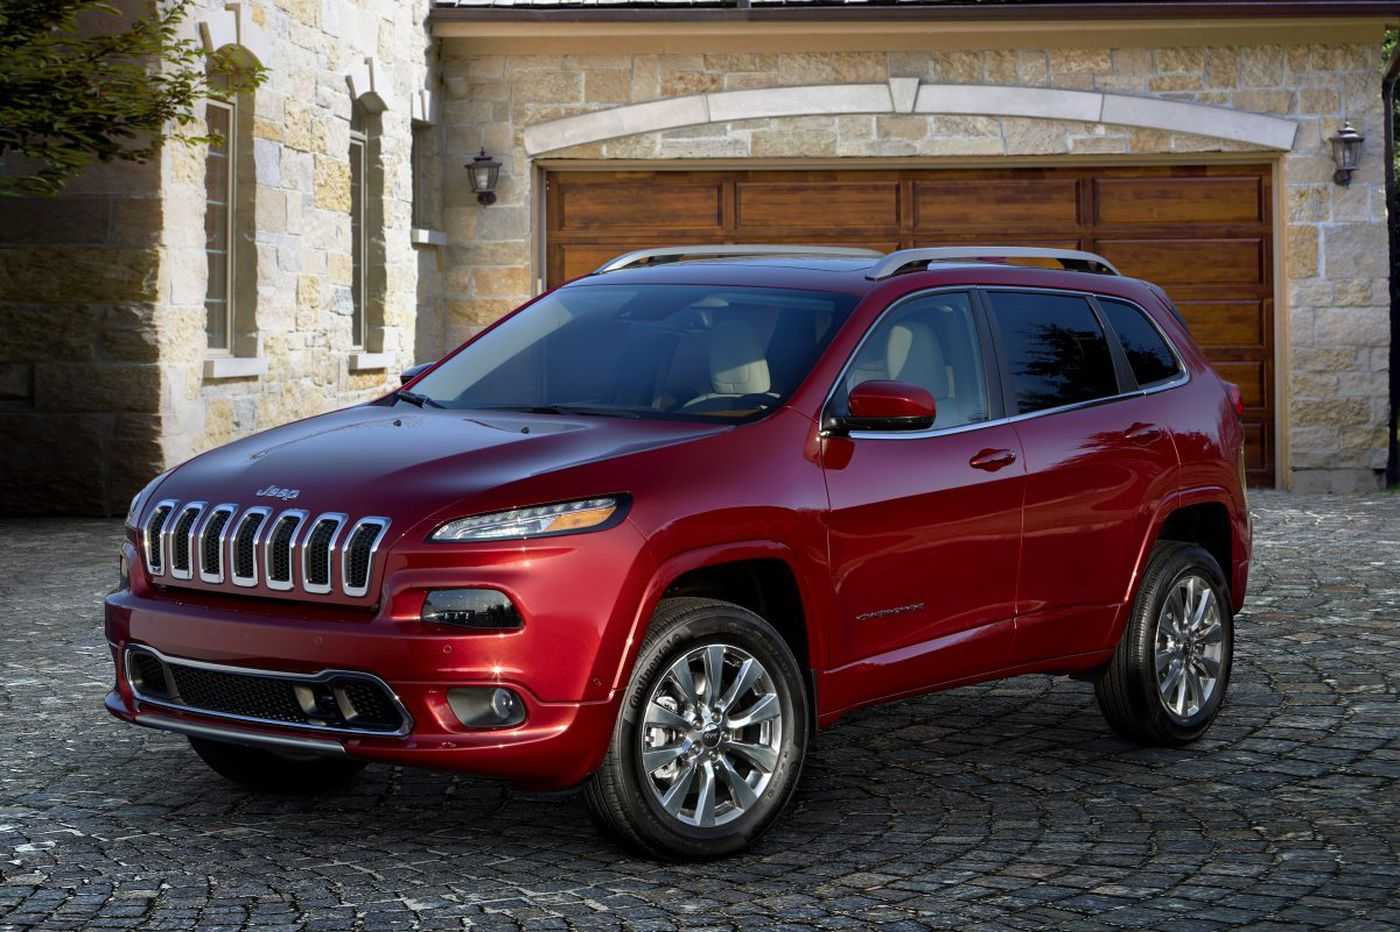 Jeep Cherokee offers rugged, old style in a small SUV